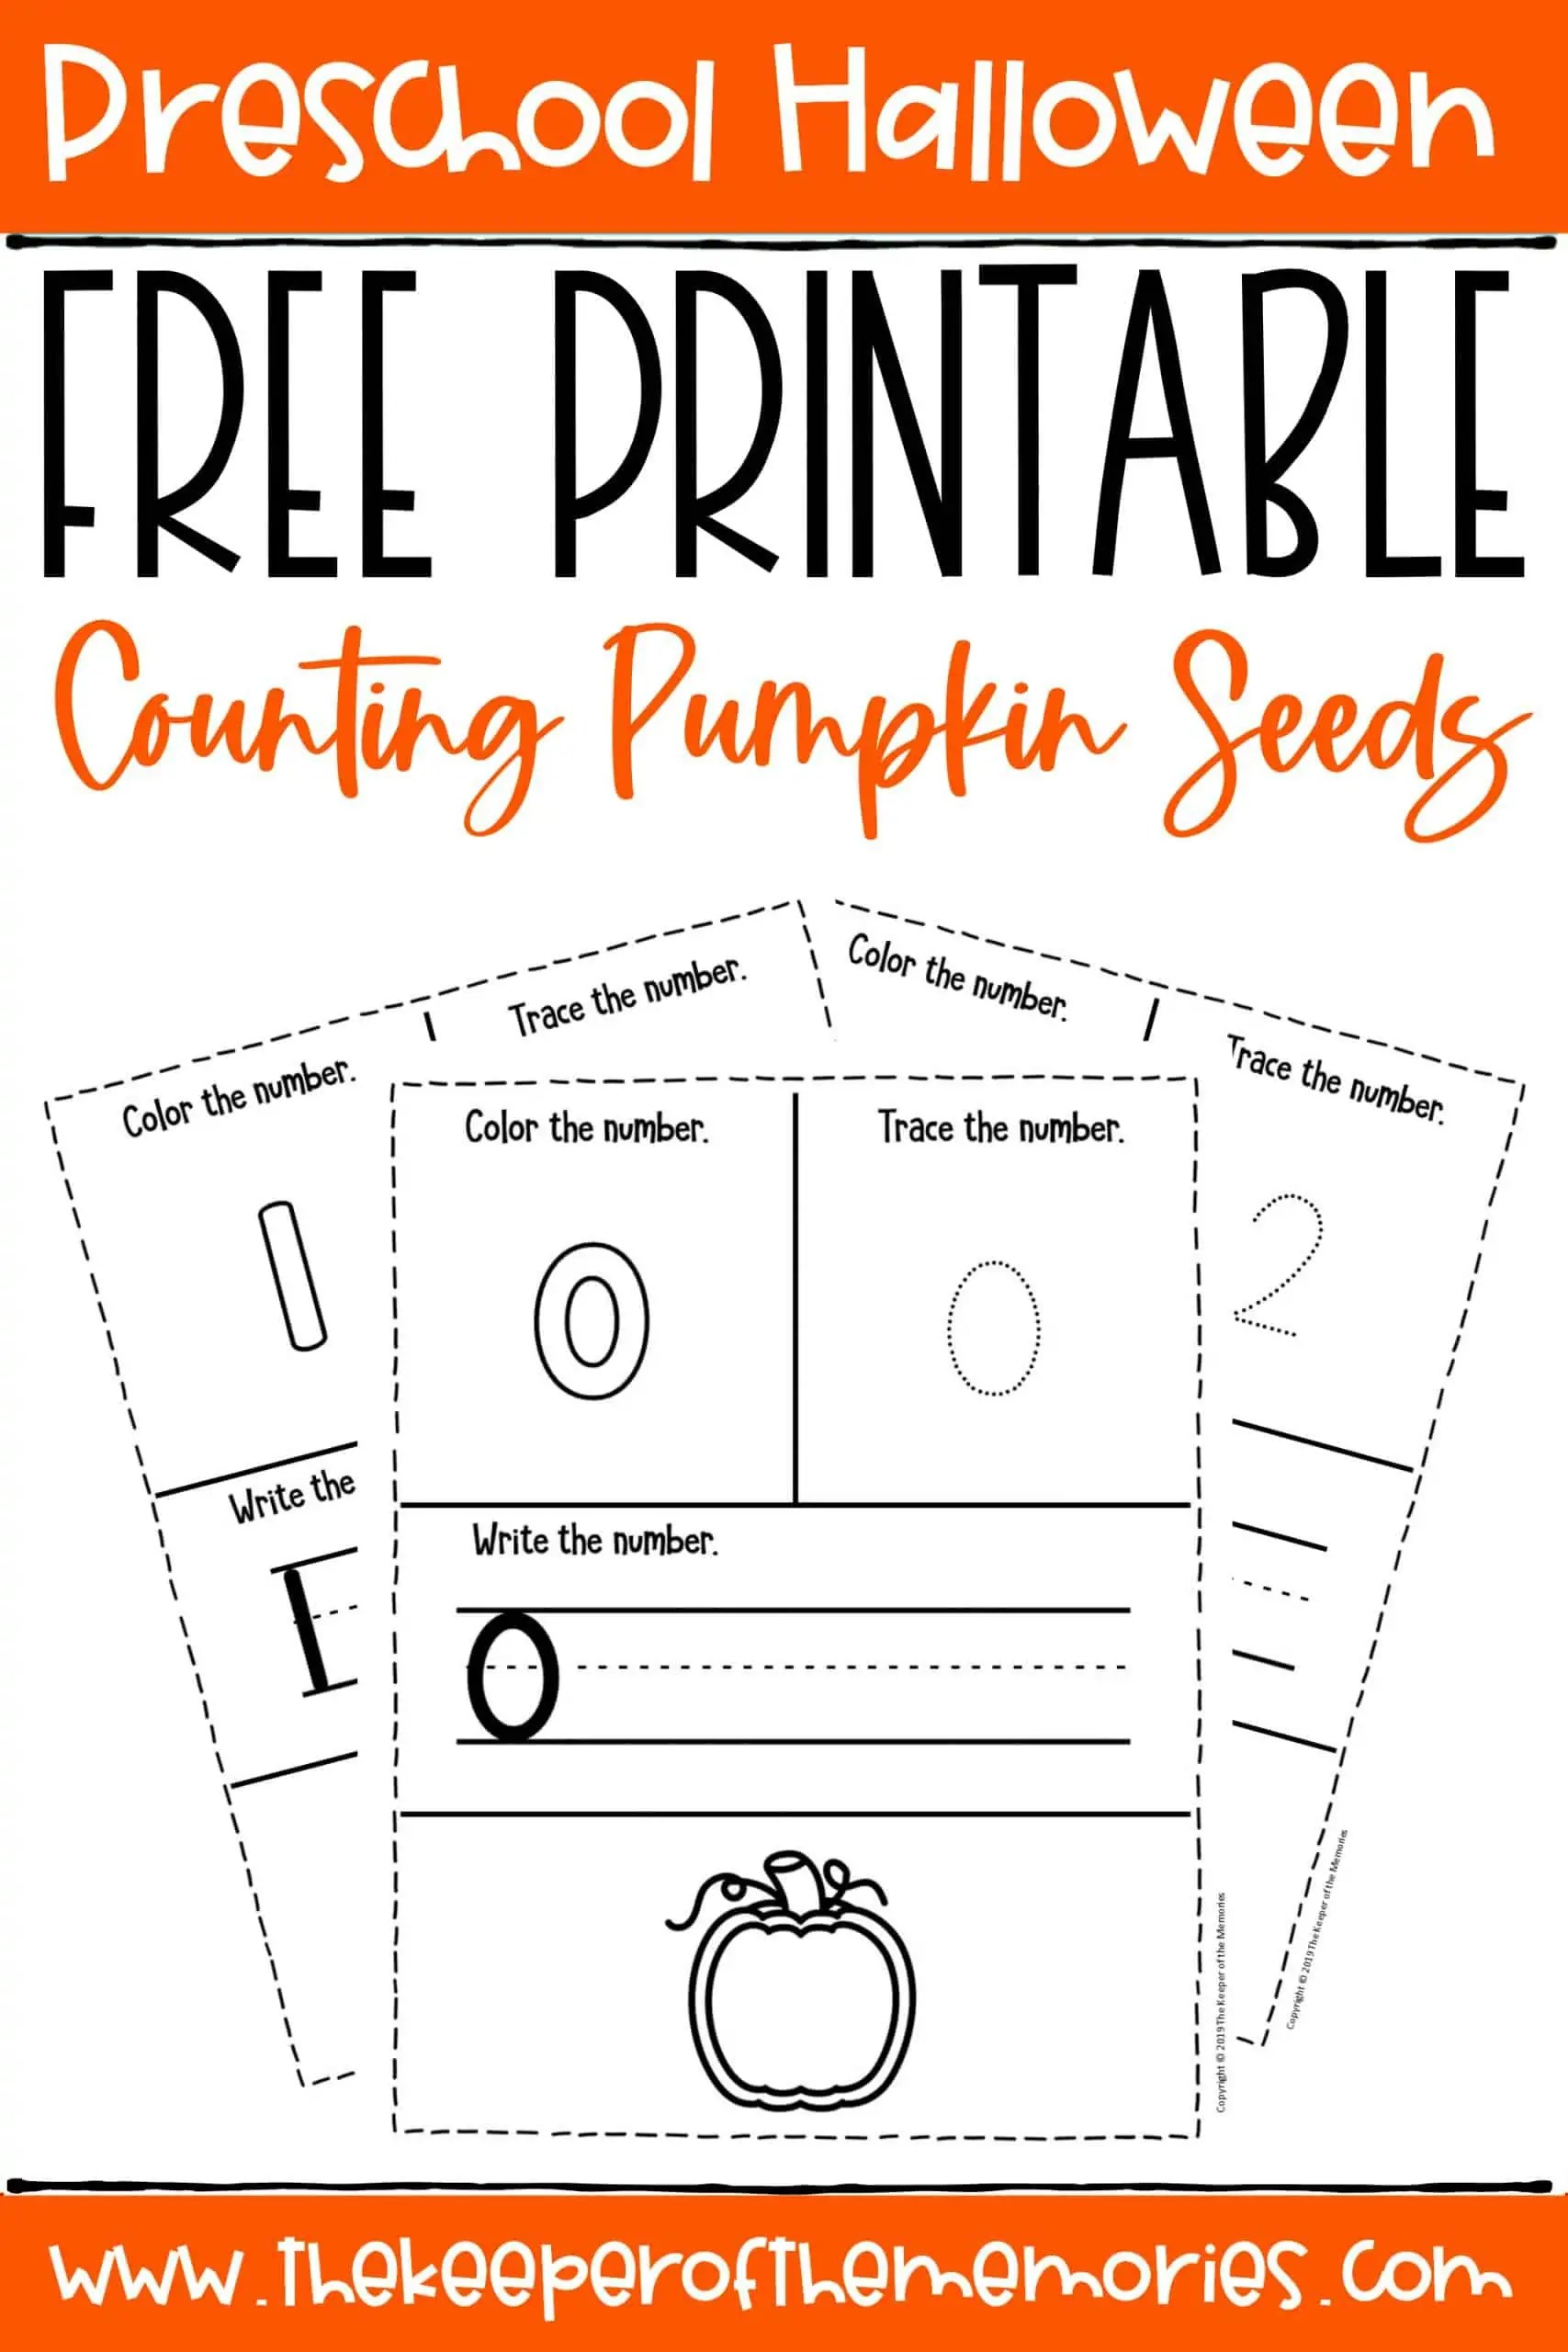 Counting Pumpkin Seeds Halloween Worksheets For Preschool